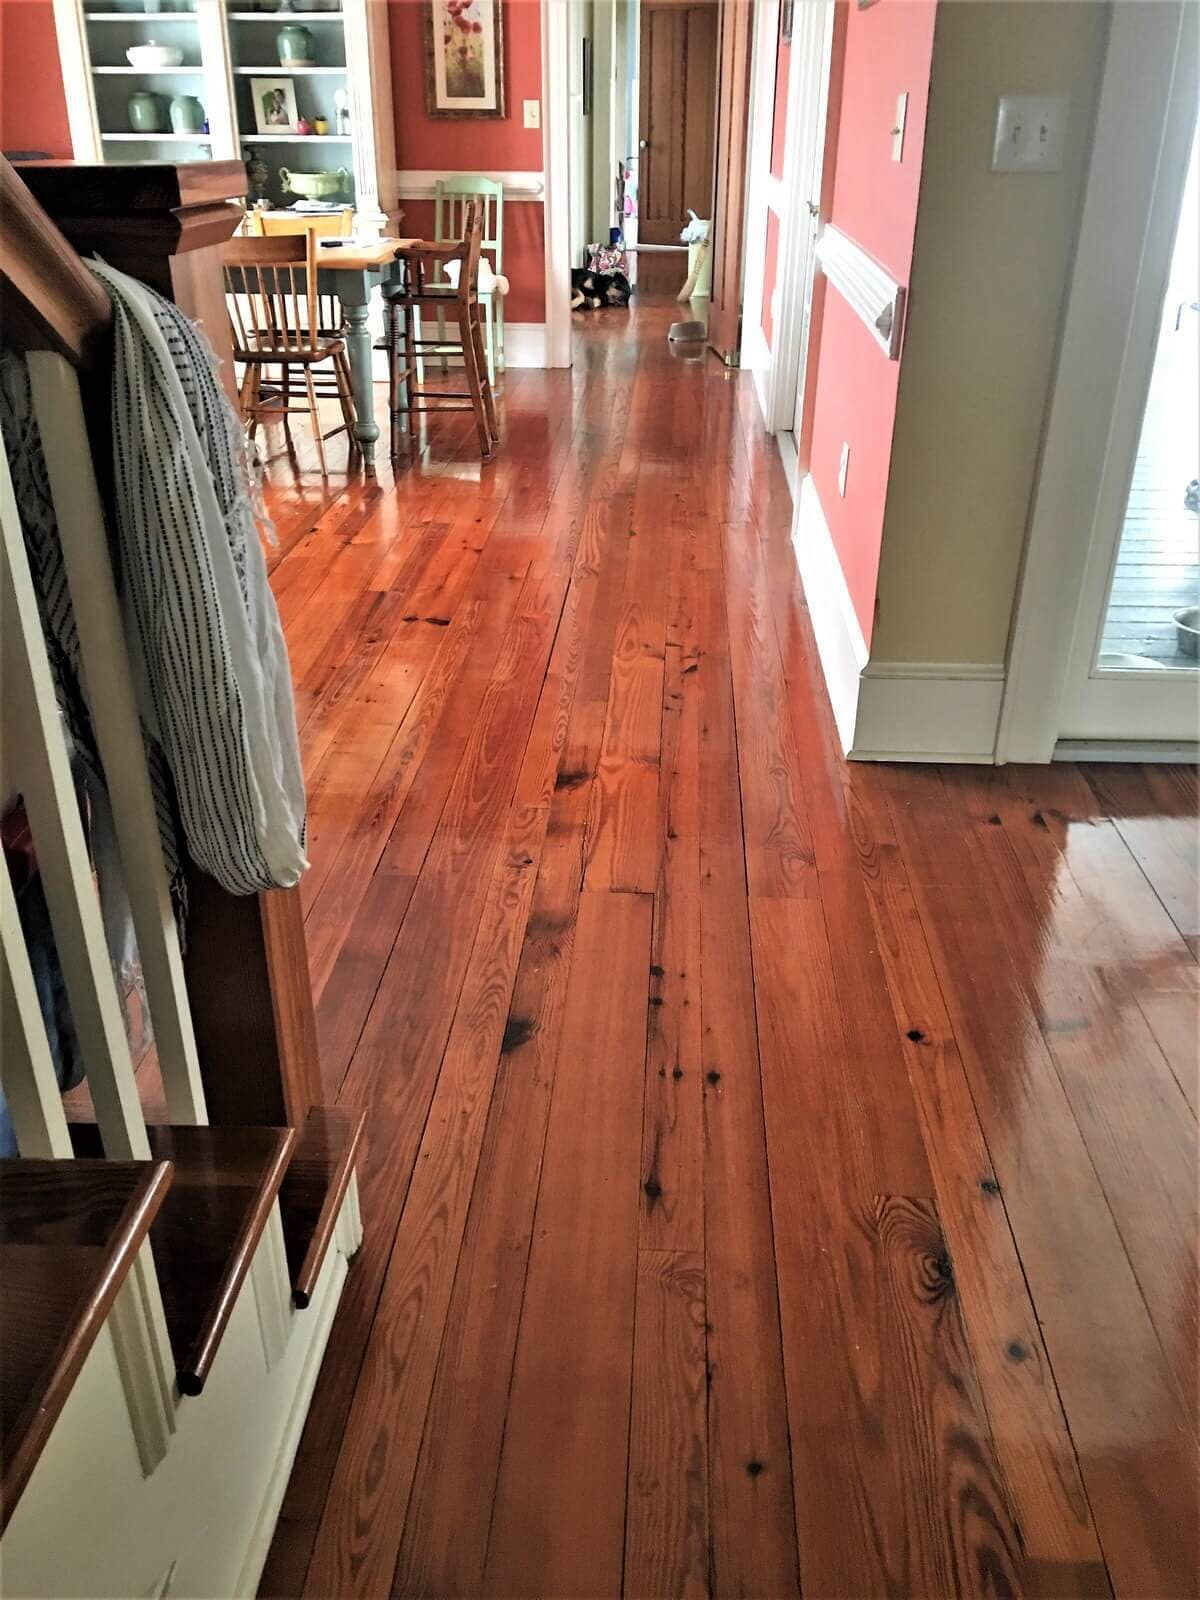 Heart pine plain sawn  flooring in a pink room in East Amherst, ny